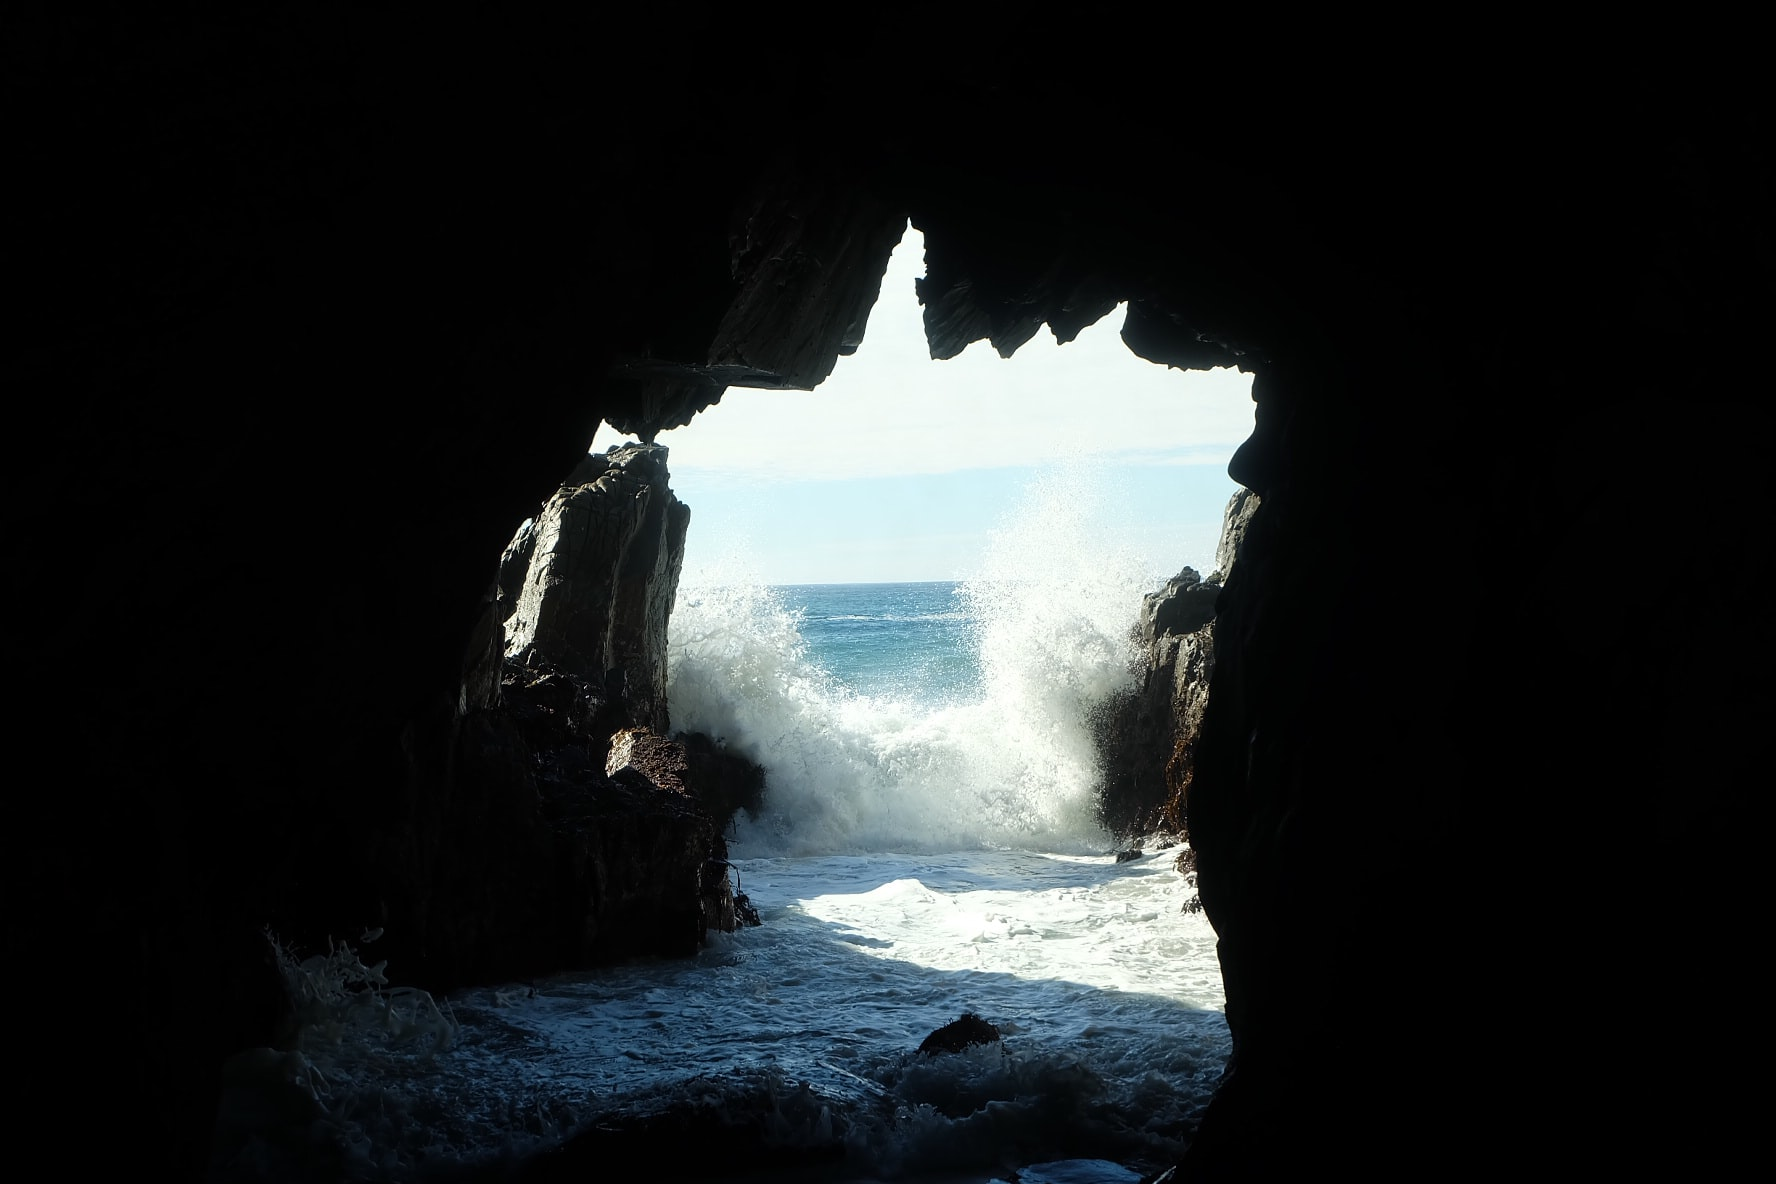 cave with sea wave at daytime photography